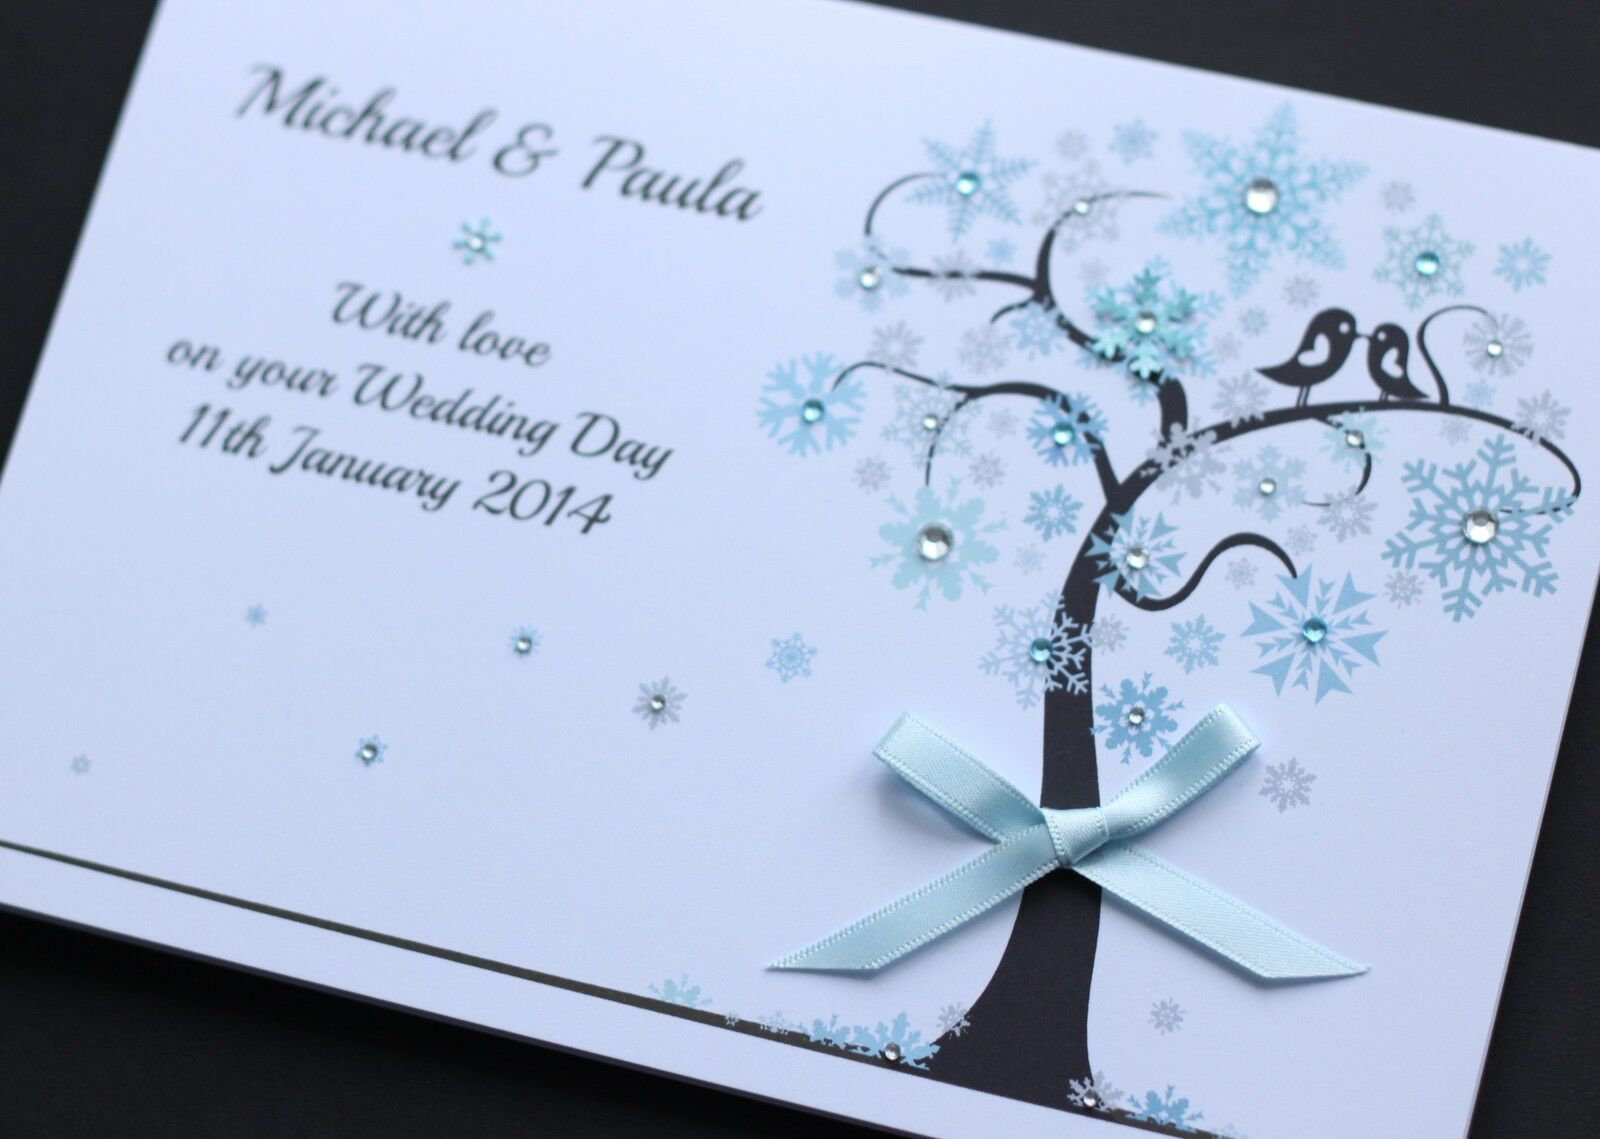 LARGE Handmade Personalised WINTER WEDDING Congratulations Card O GBP495